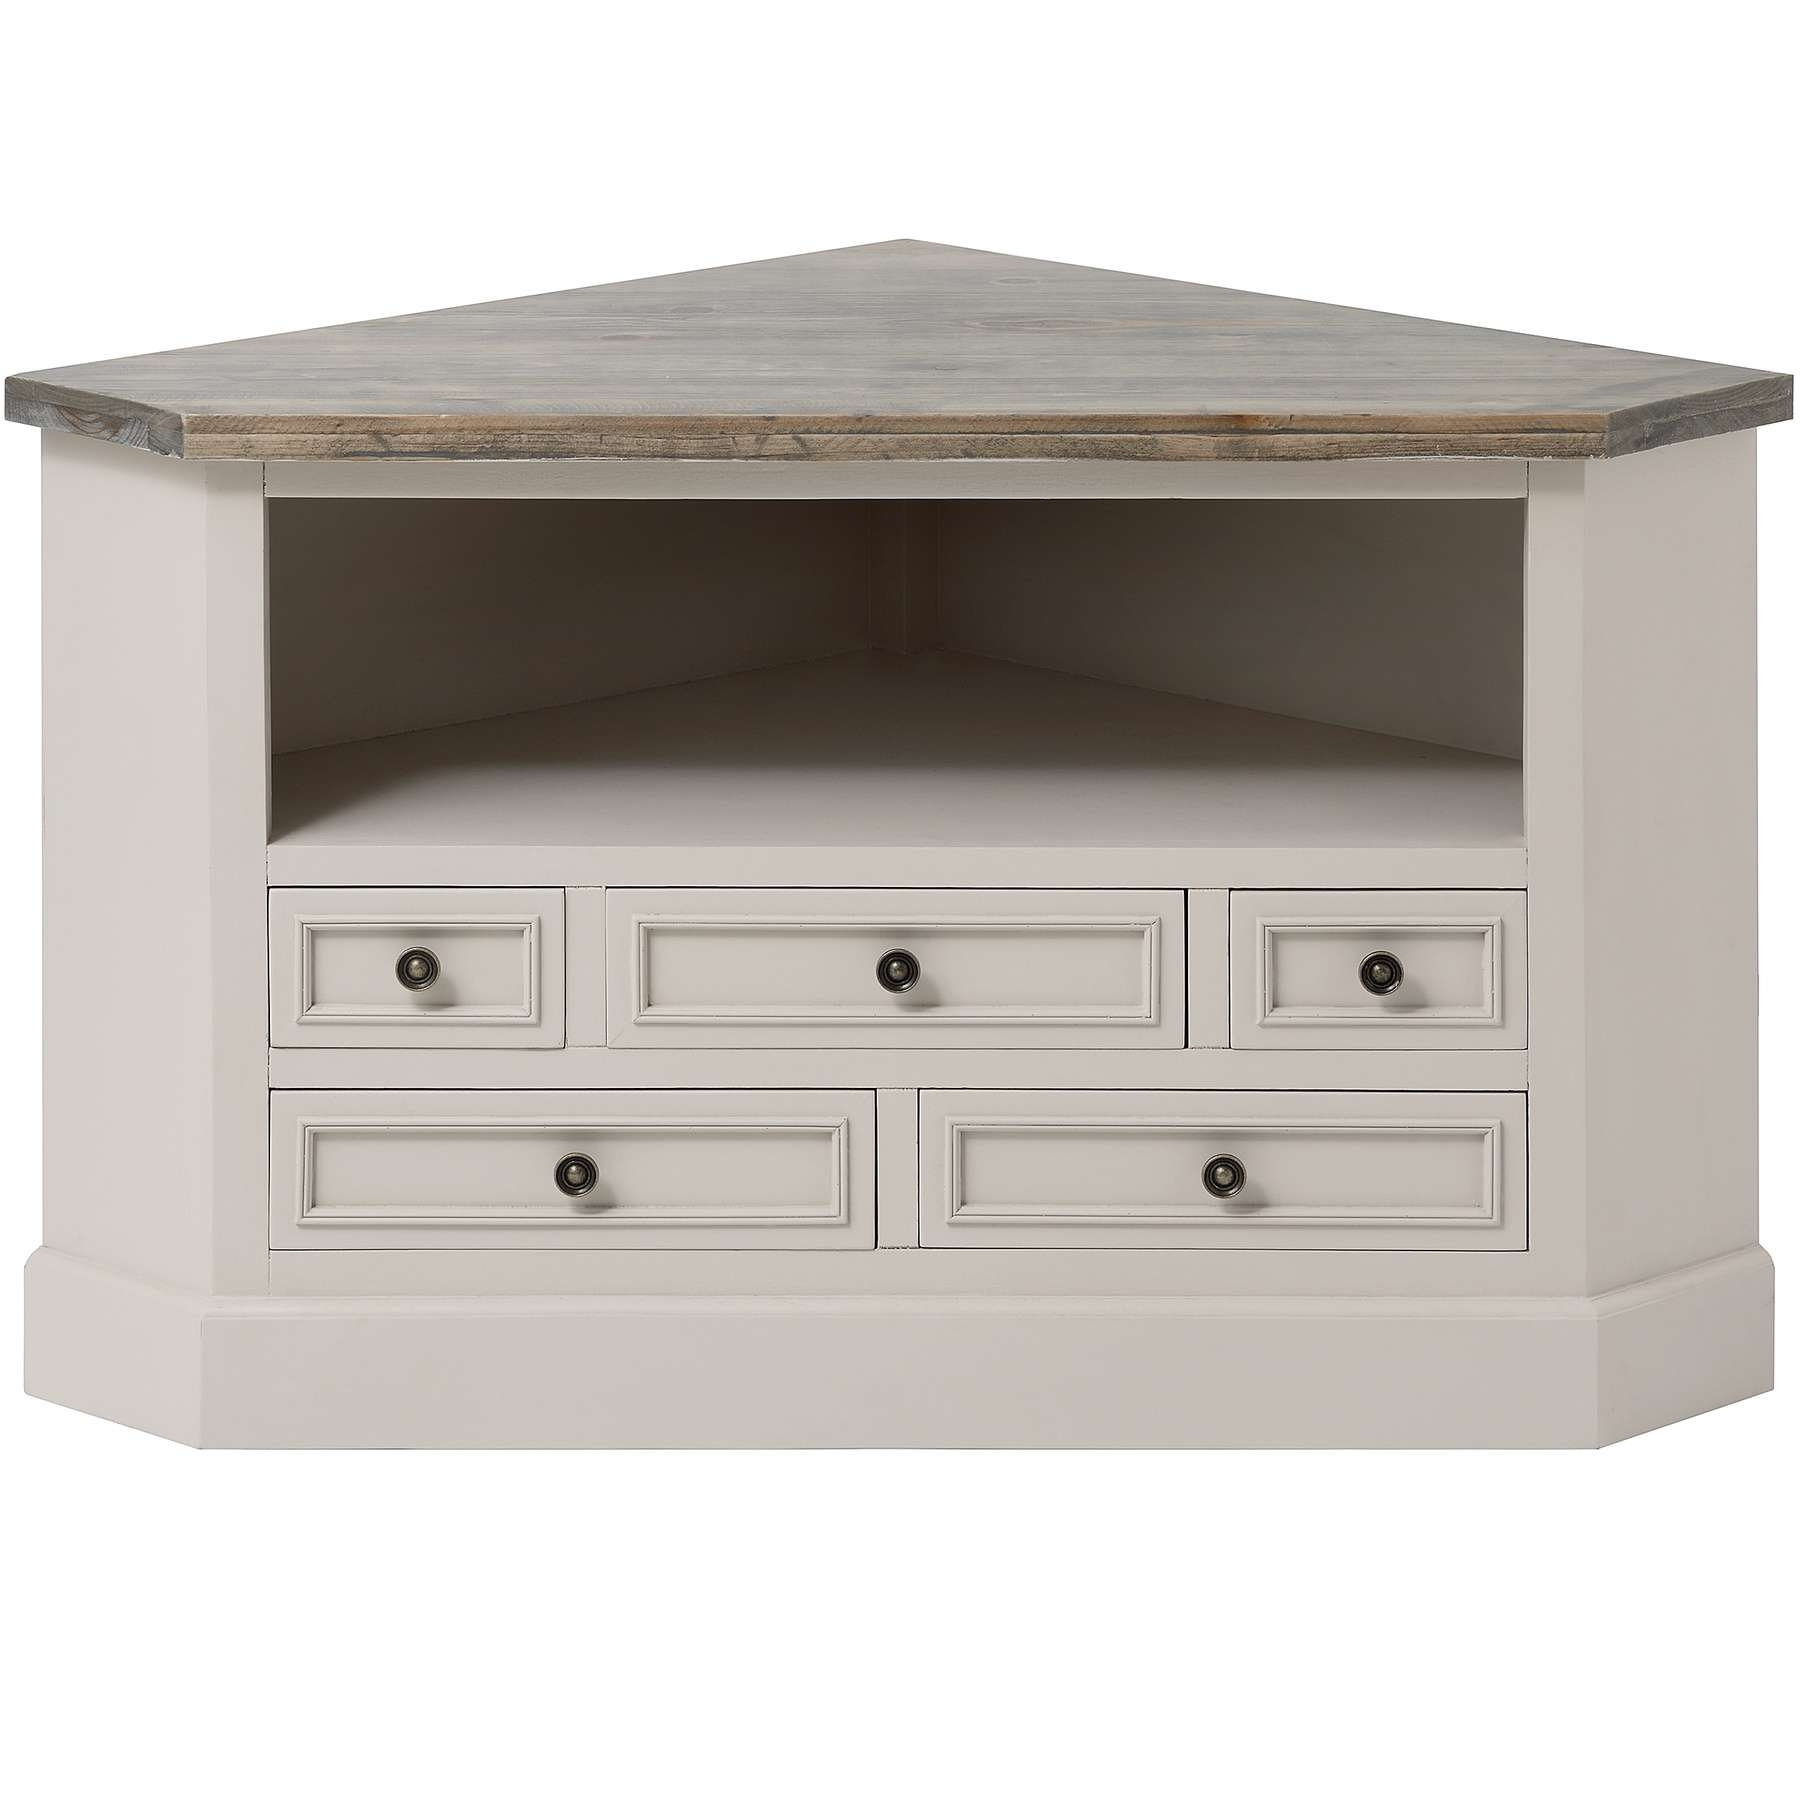 Rustic White Painted Walnut Wood Corner Tv Stand With Drawers Of Regarding White Wood Corner Tv Stands (View 8 of 15)